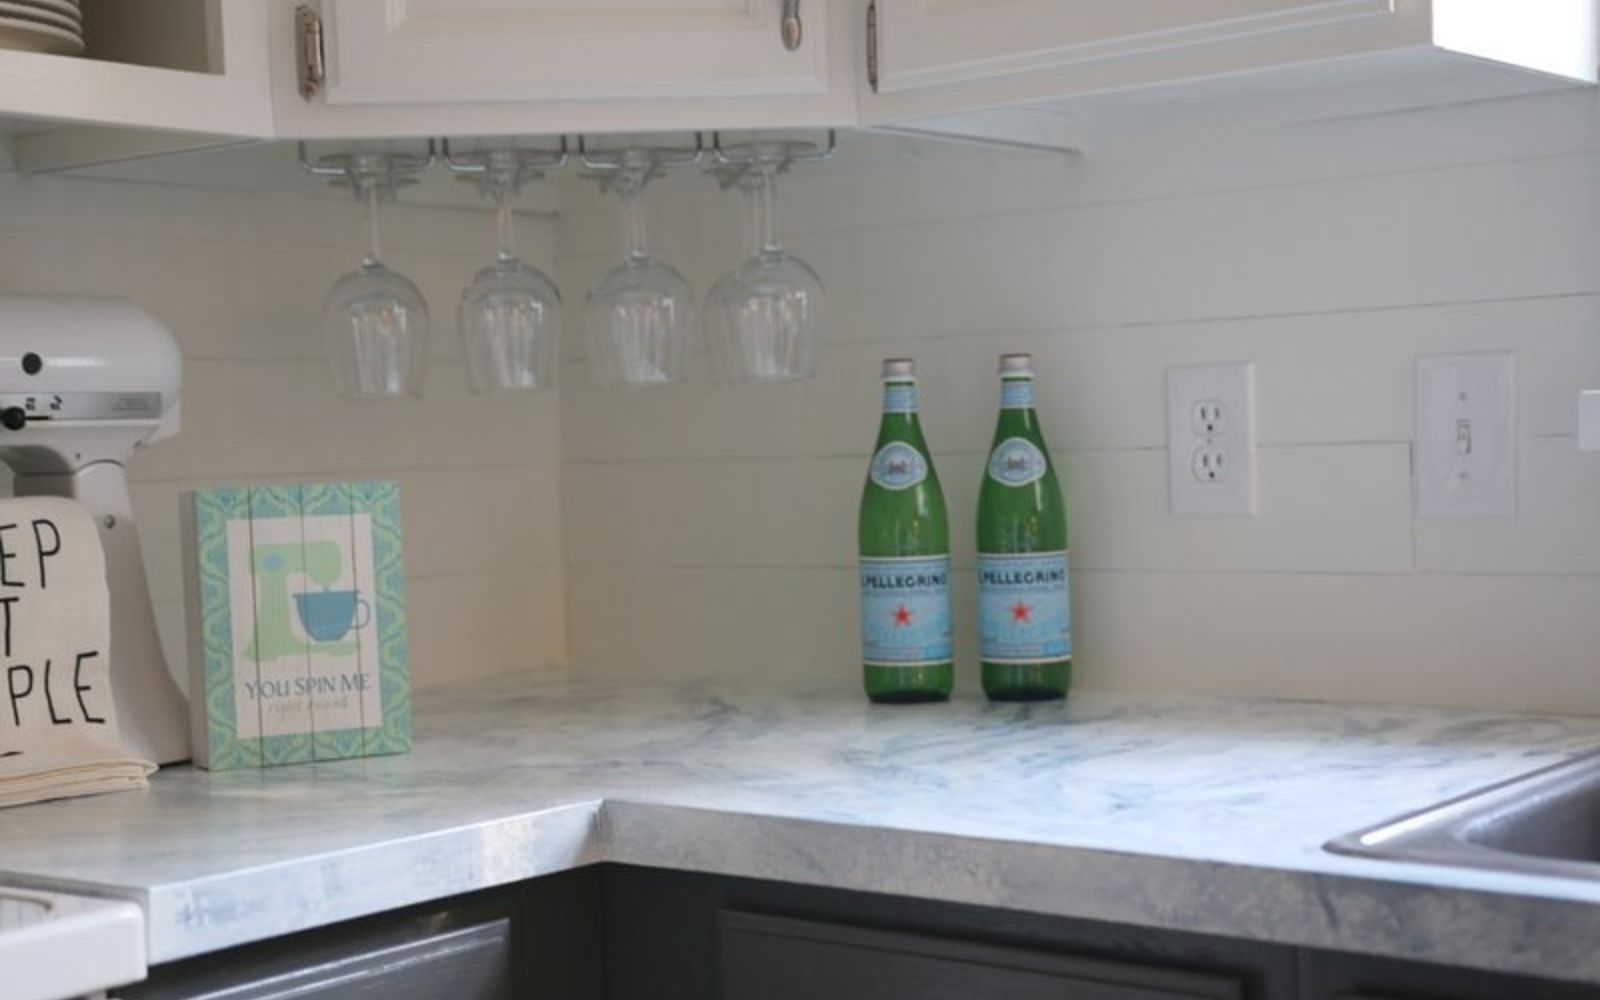 Kitchen Backspash Ideas 13 incredible kitchen backsplash ideas that aren't tile | hometalk